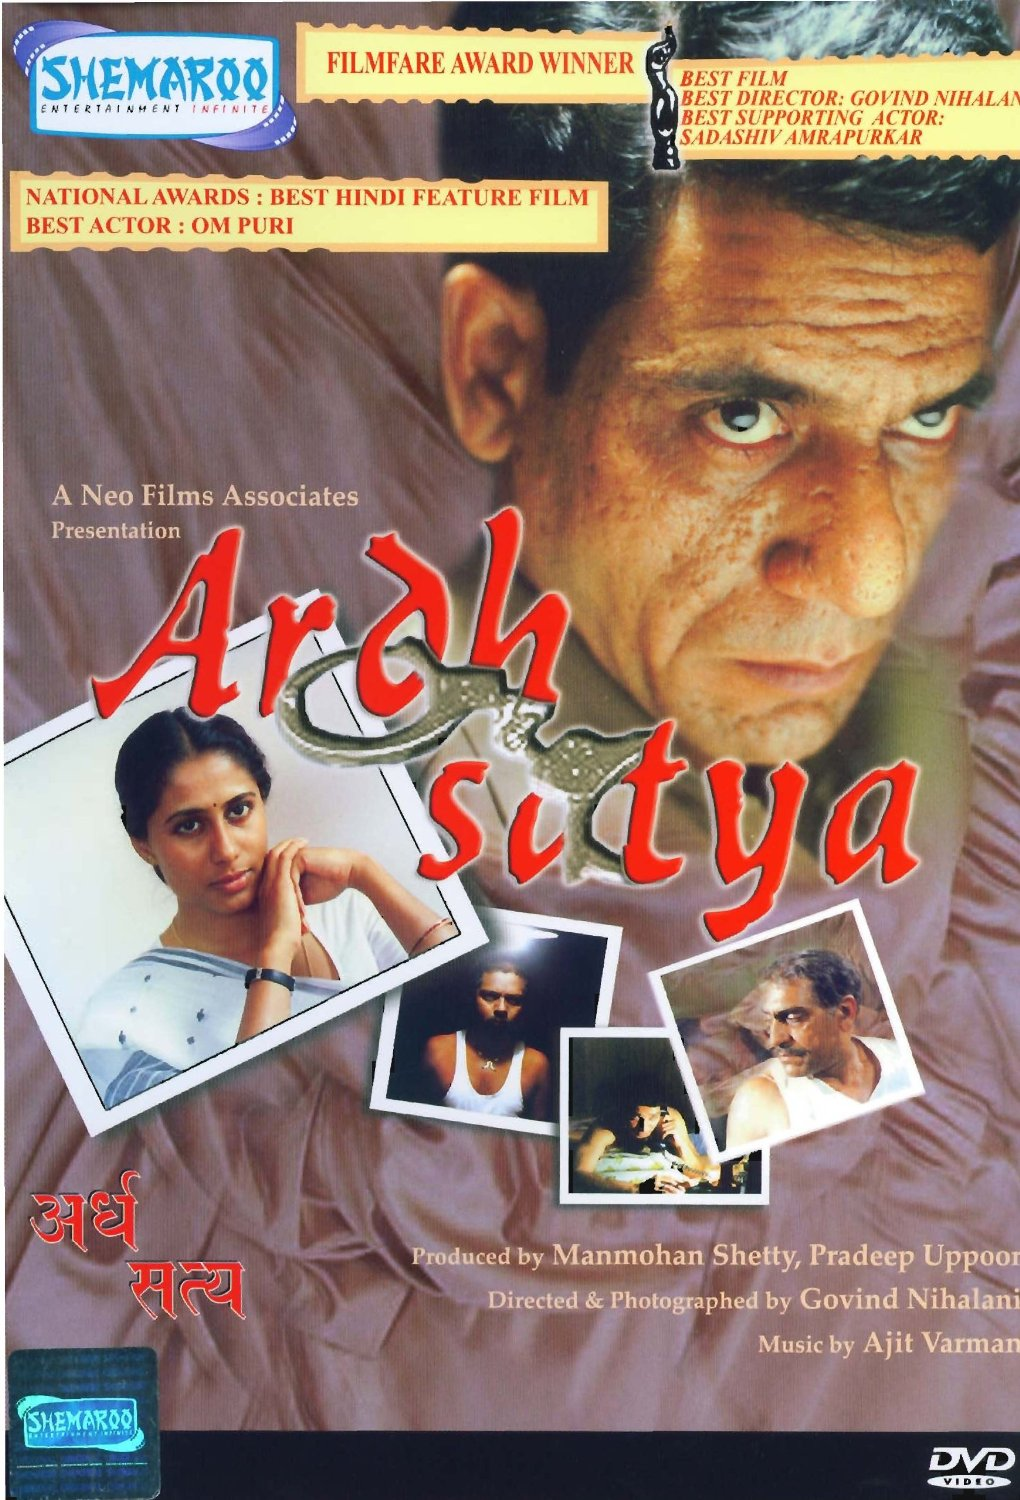 Ardhsatya Movie Review